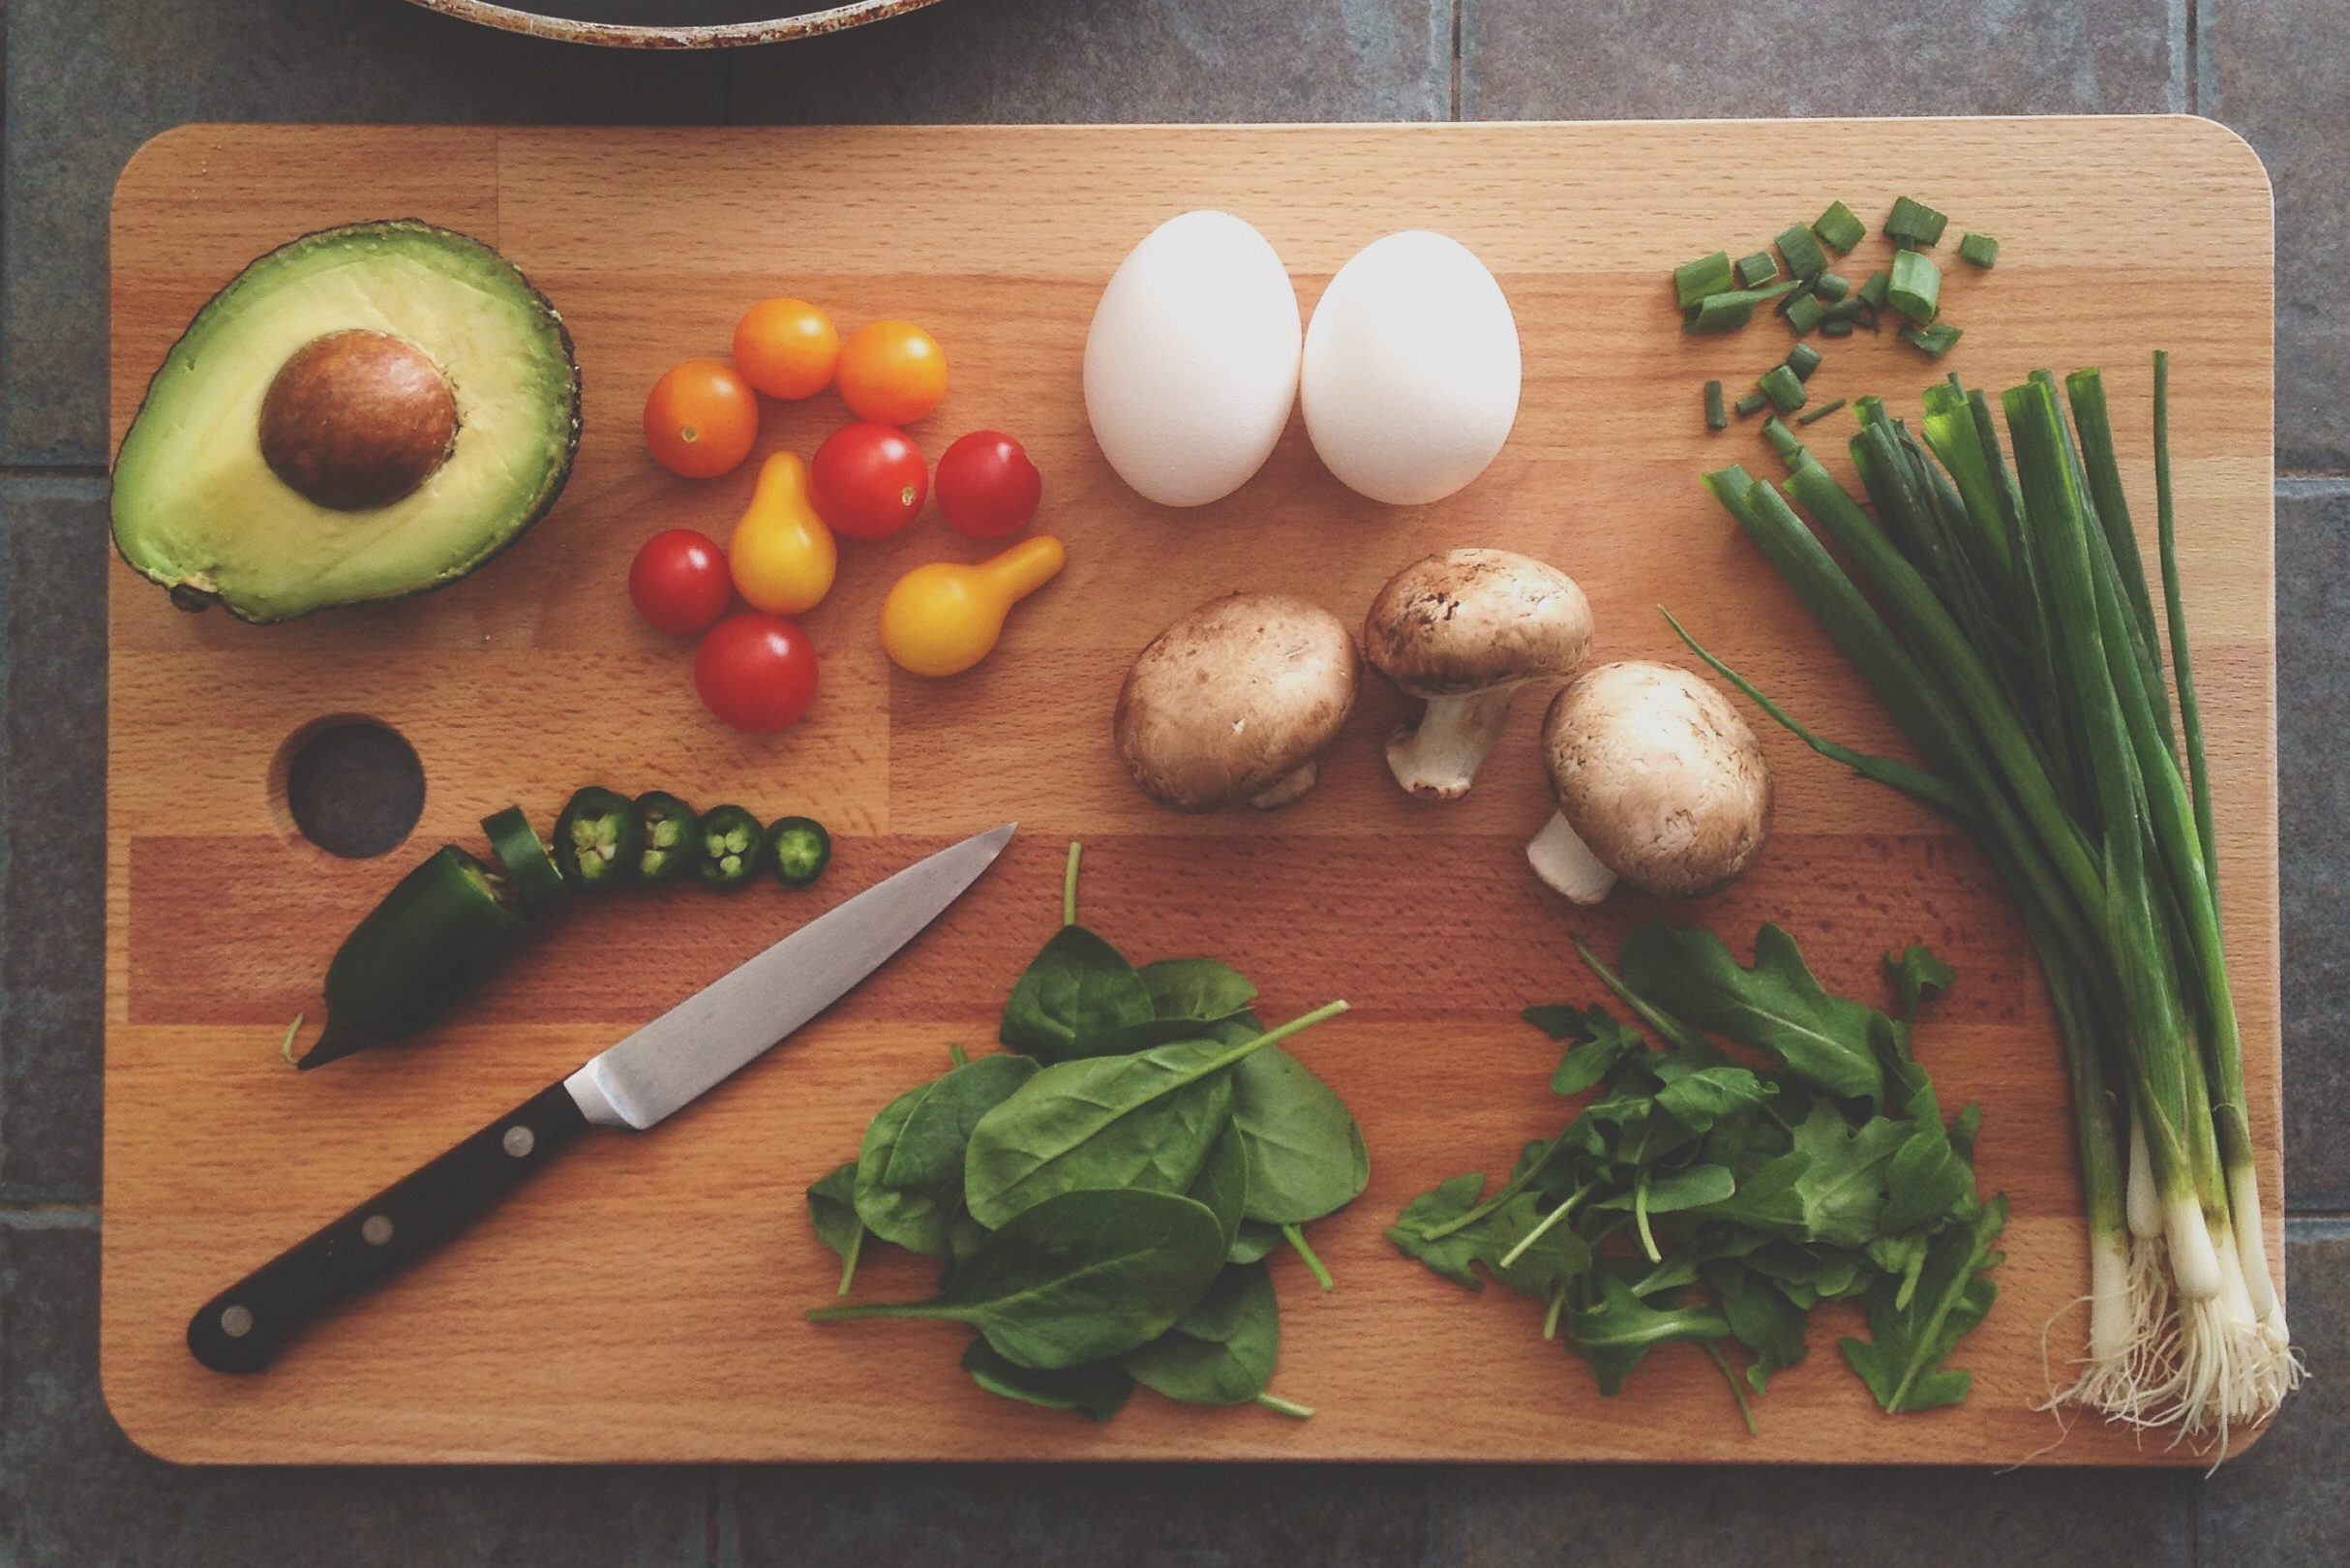 Food on chop board for Mexican Cookery Class